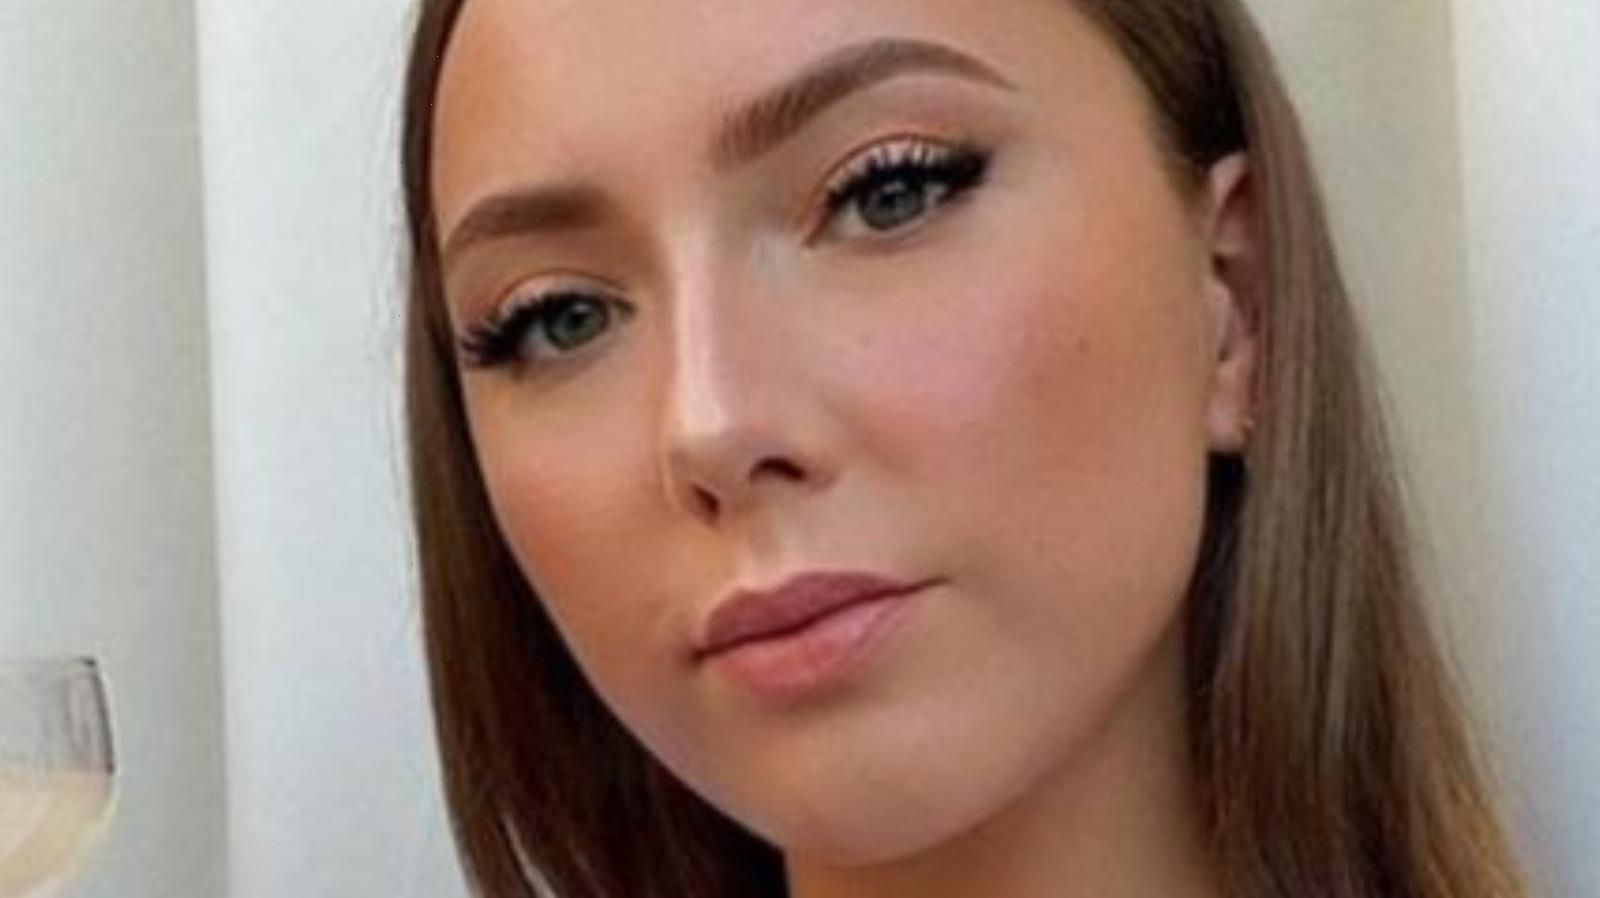 Why A Rare Photo Of Eminem's Daughter And Her Boyfriend Has Fans Talking